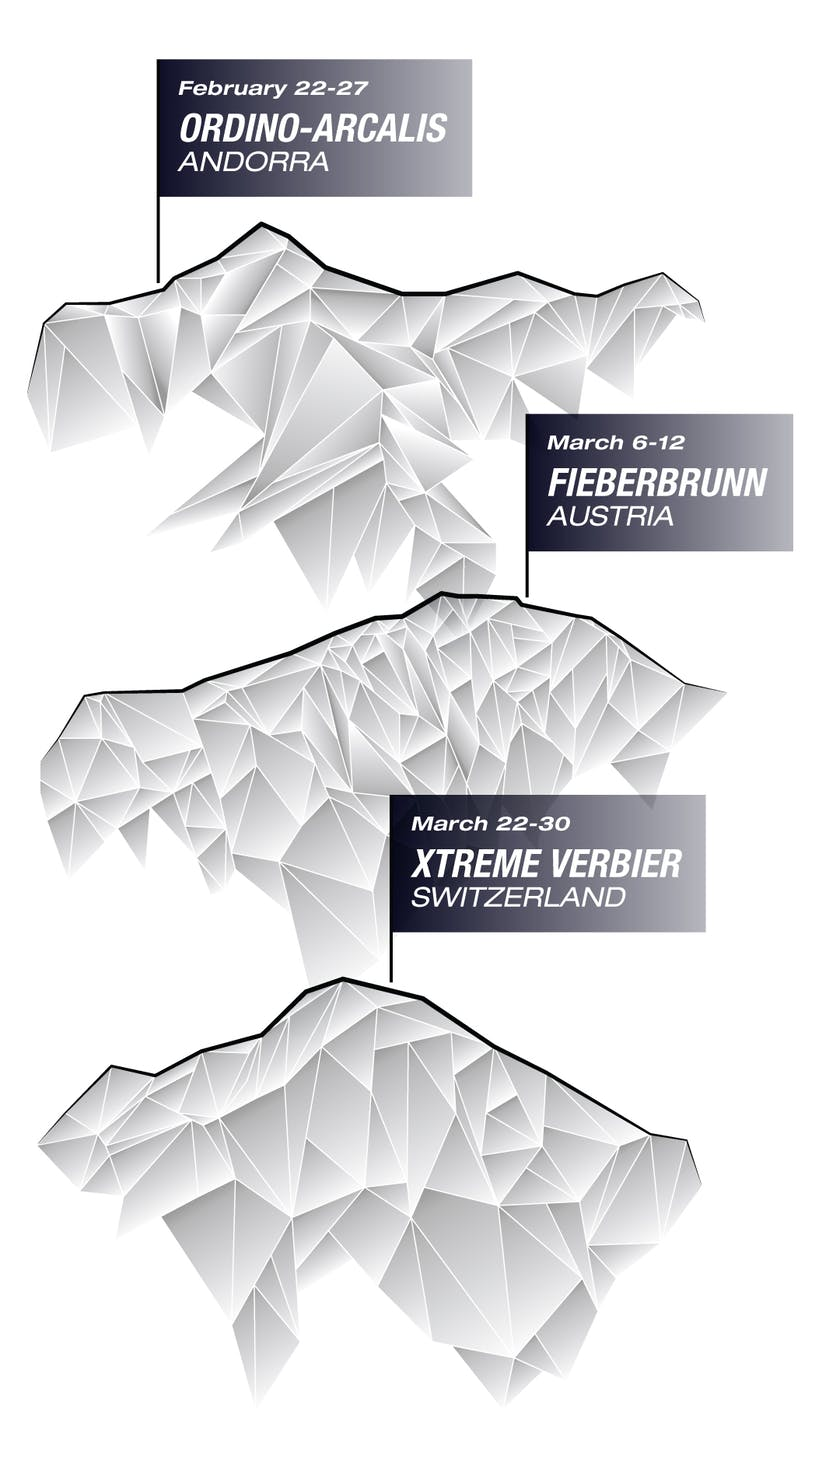 The 2021 Freeride World Tour Schedule